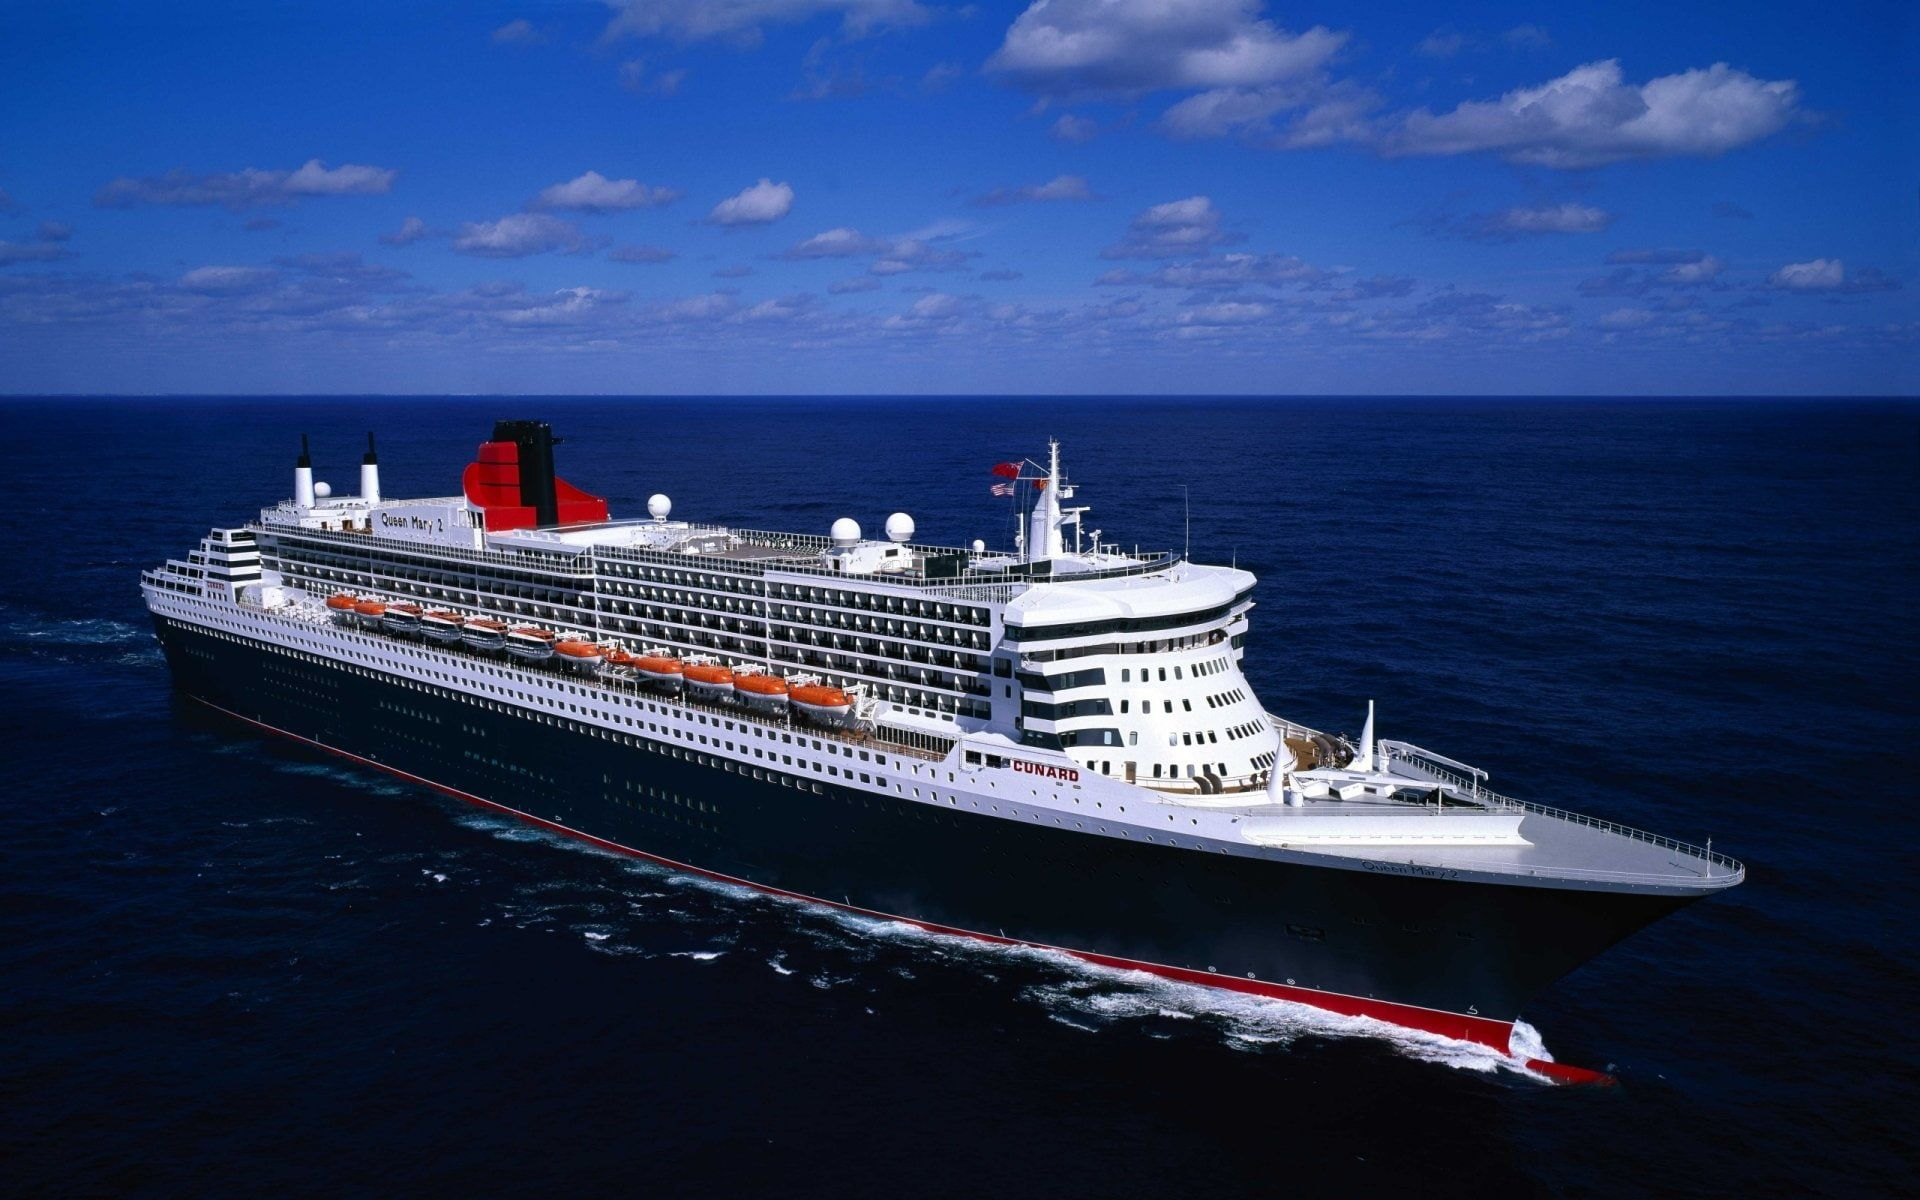 Vehicles Rms Queen Mary 2 1080p Wallpaper Hdwallpaper Desktop With Images Queen Mary Cruise Best Cruise Lines Cunard Cruise